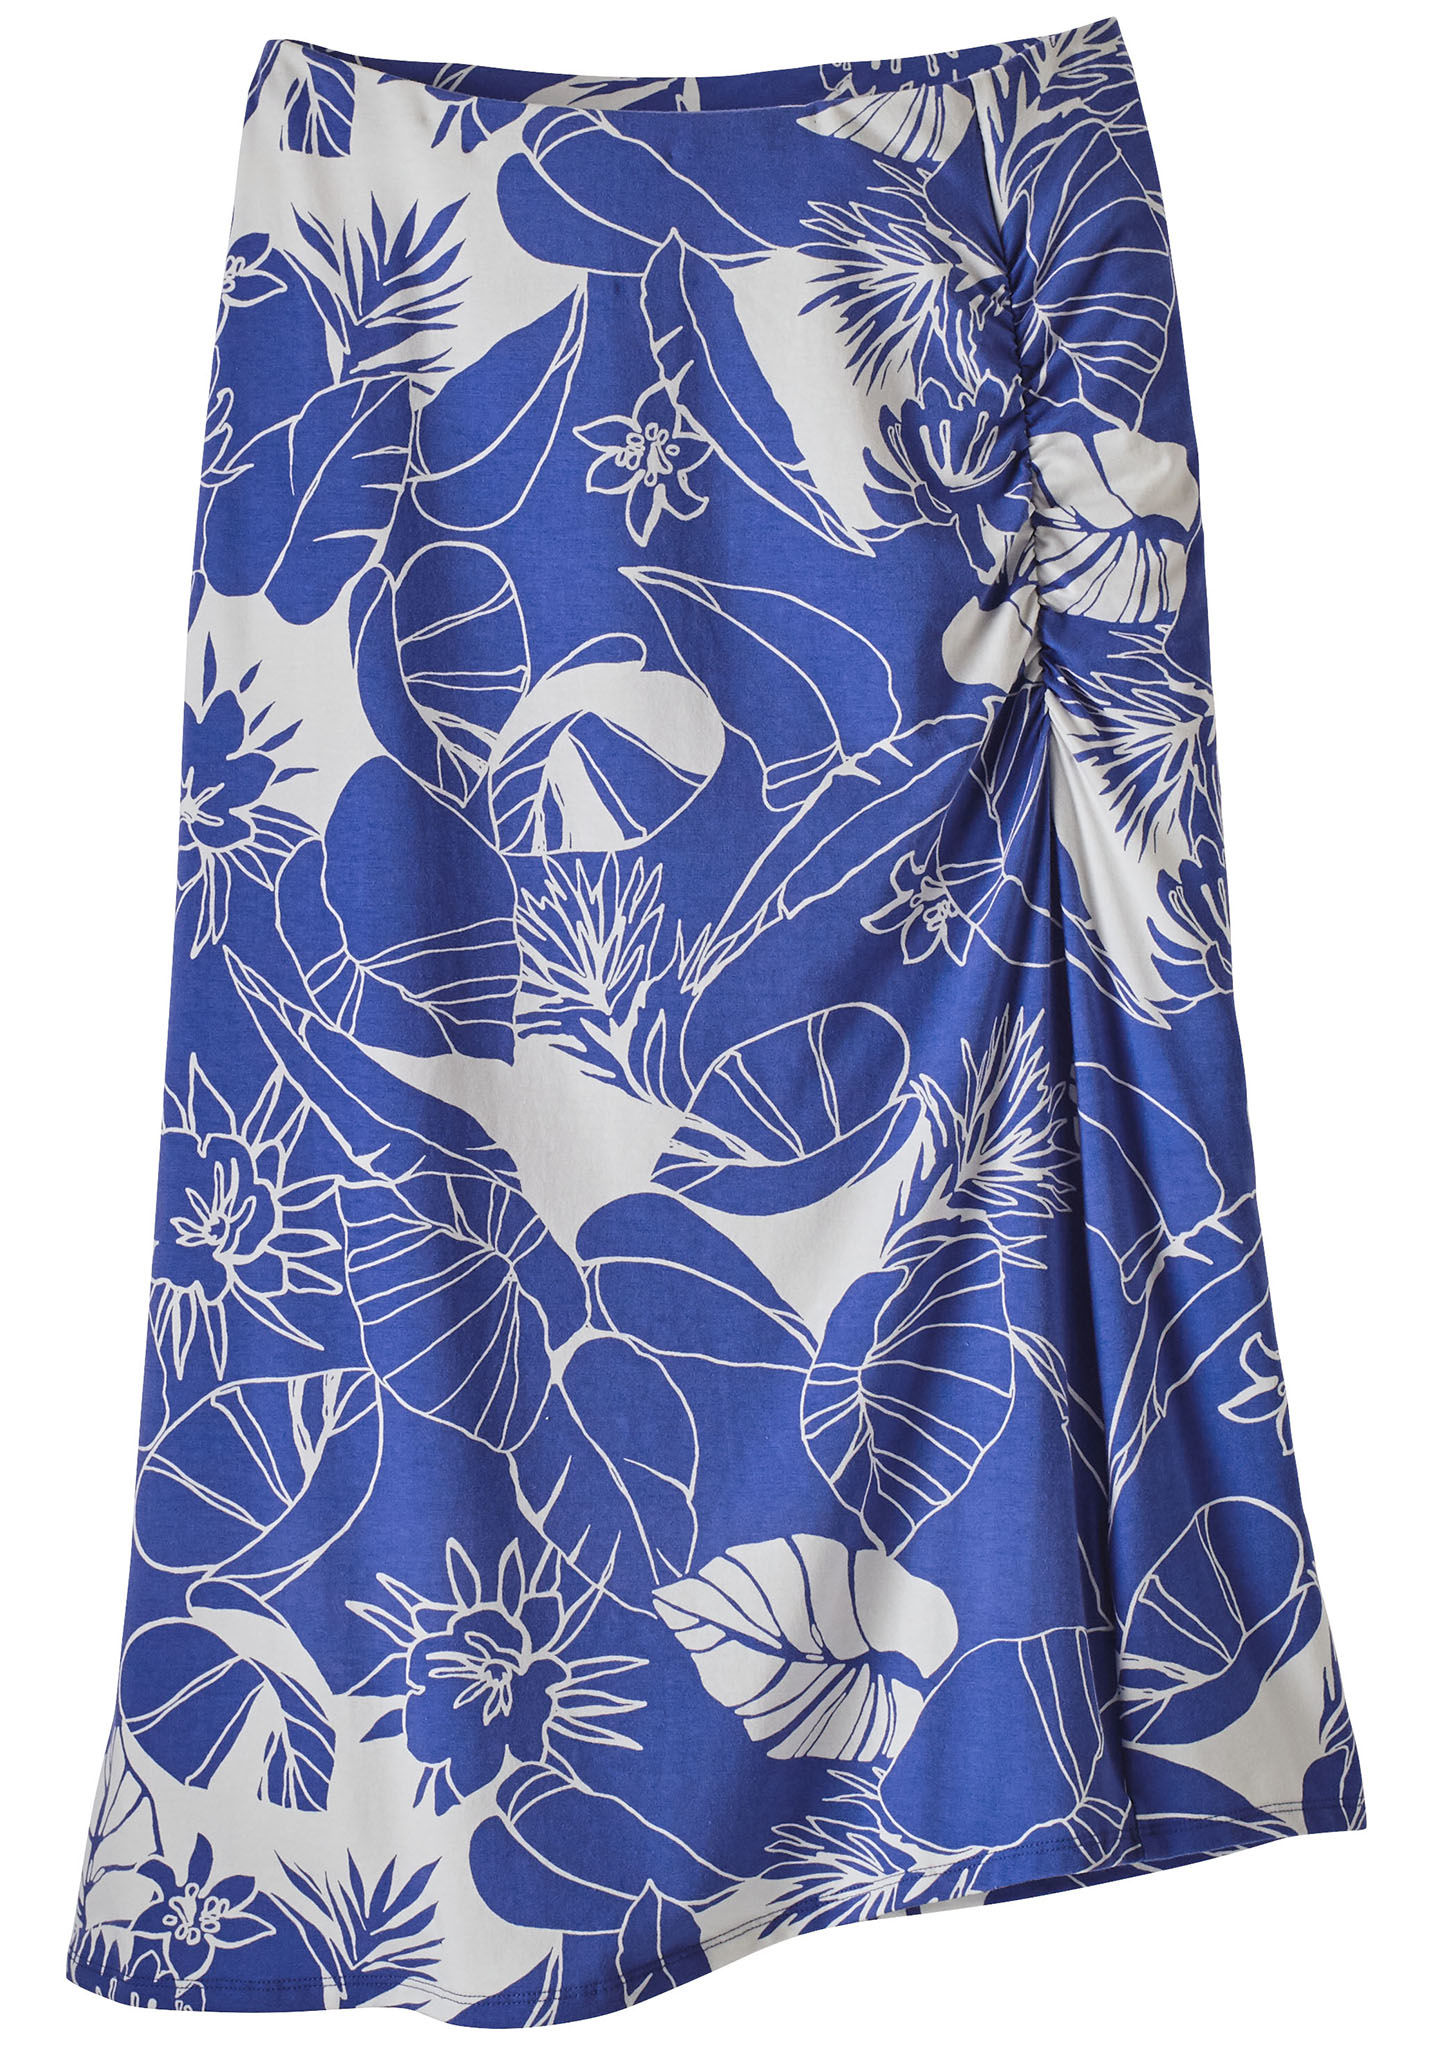 ce8644da13 PATAGONIA Dream Song - Skirt for Women - Blue - Planet Sports